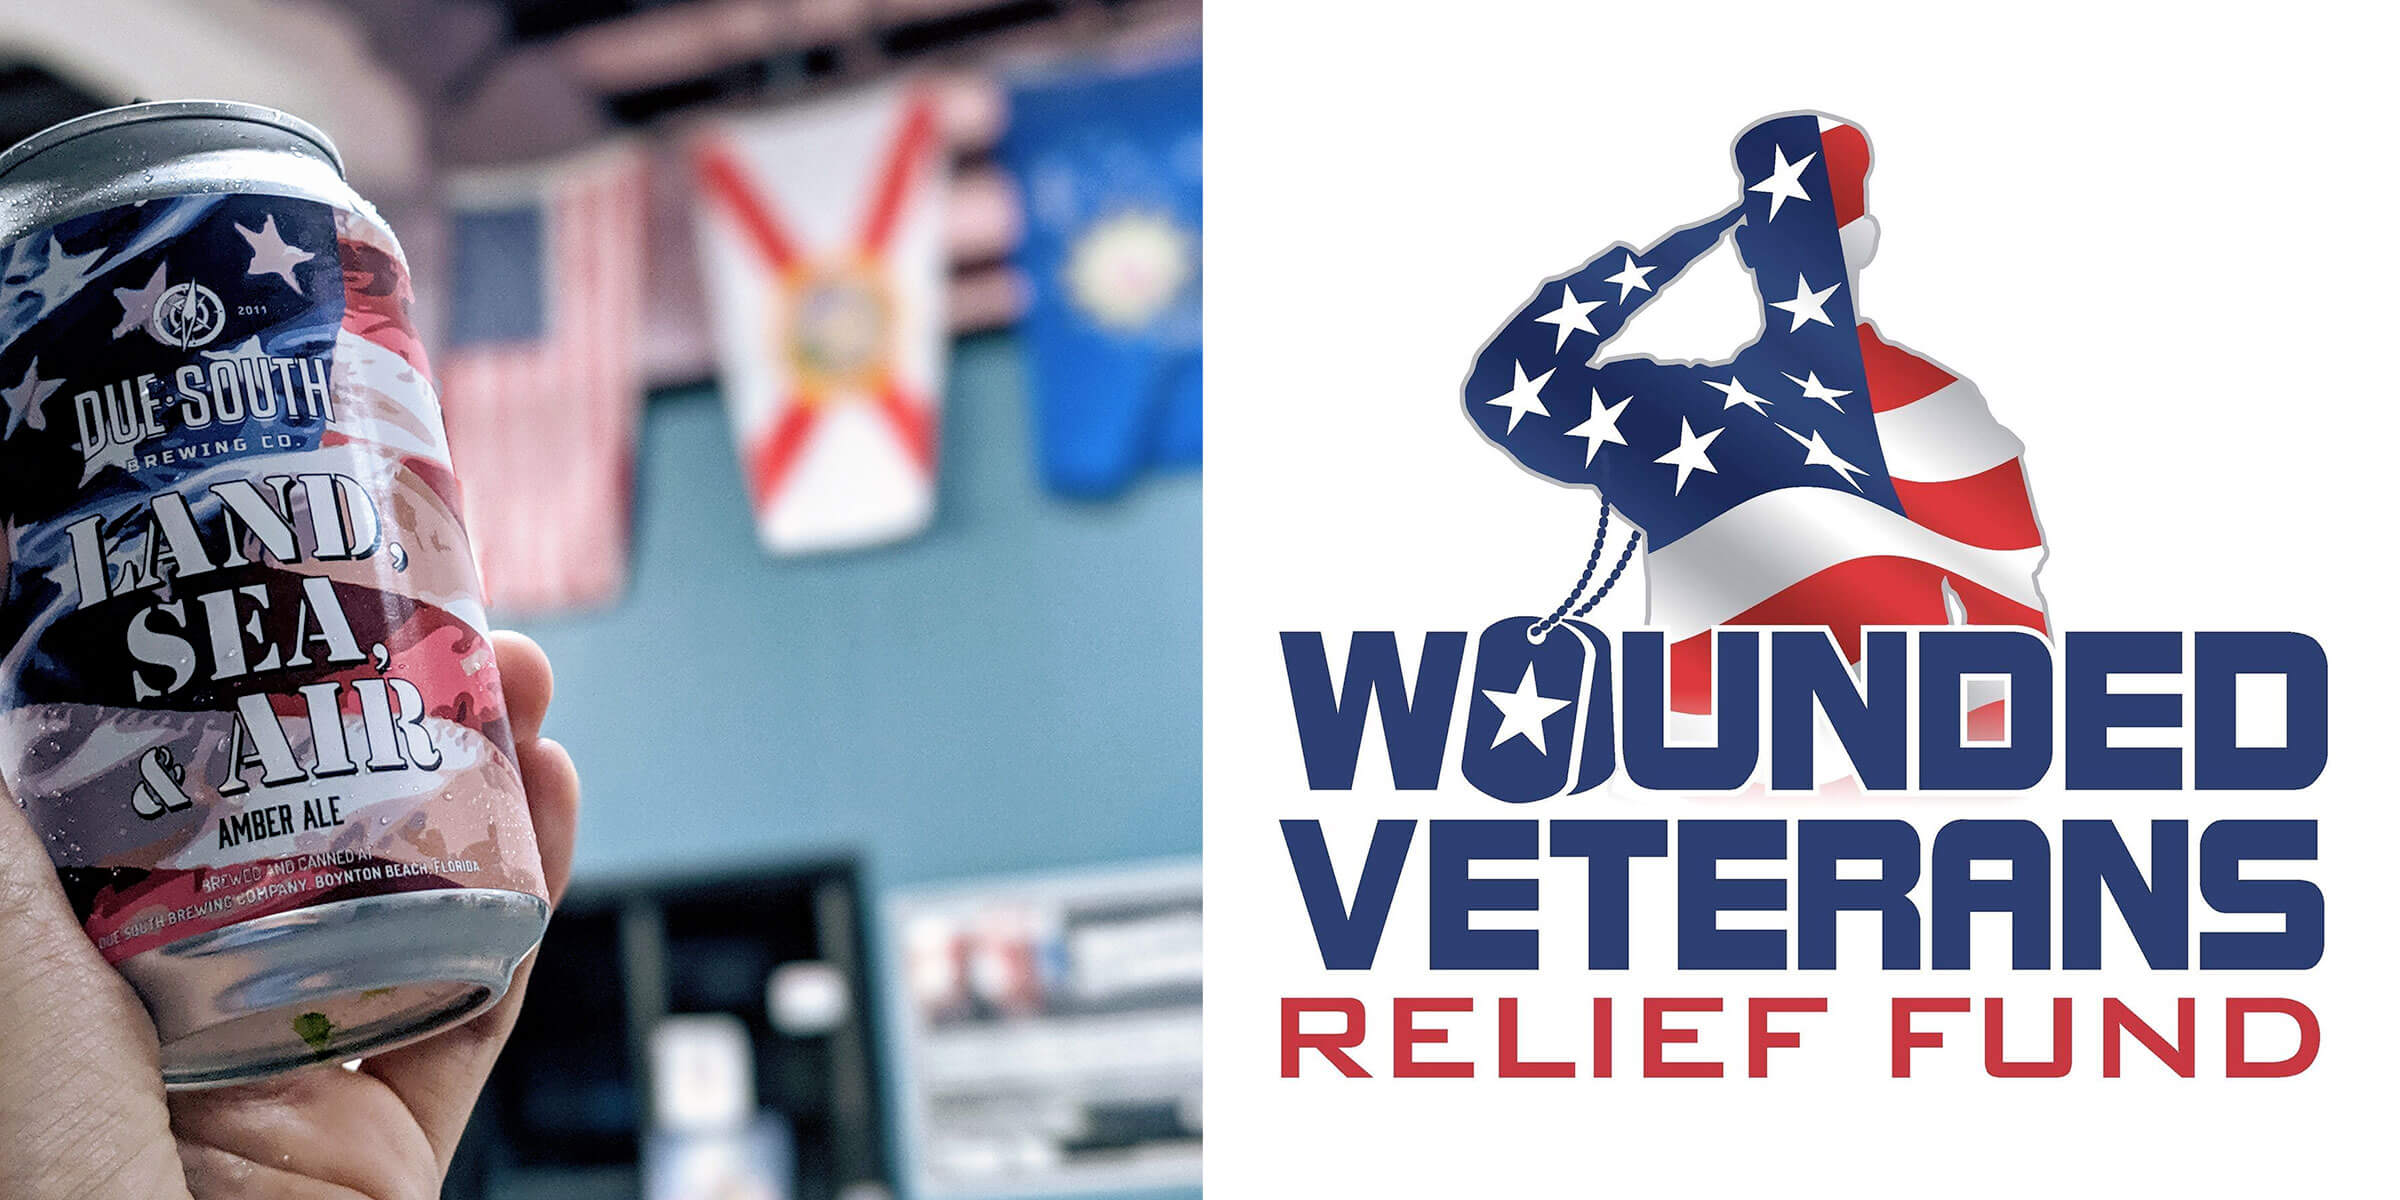 """Due South Brewing Co., a veteran owned and operated craft brewery, has released """"Land, Sea, & Air"""" to help raise funds for Wounded Veterans Relief Fund."""